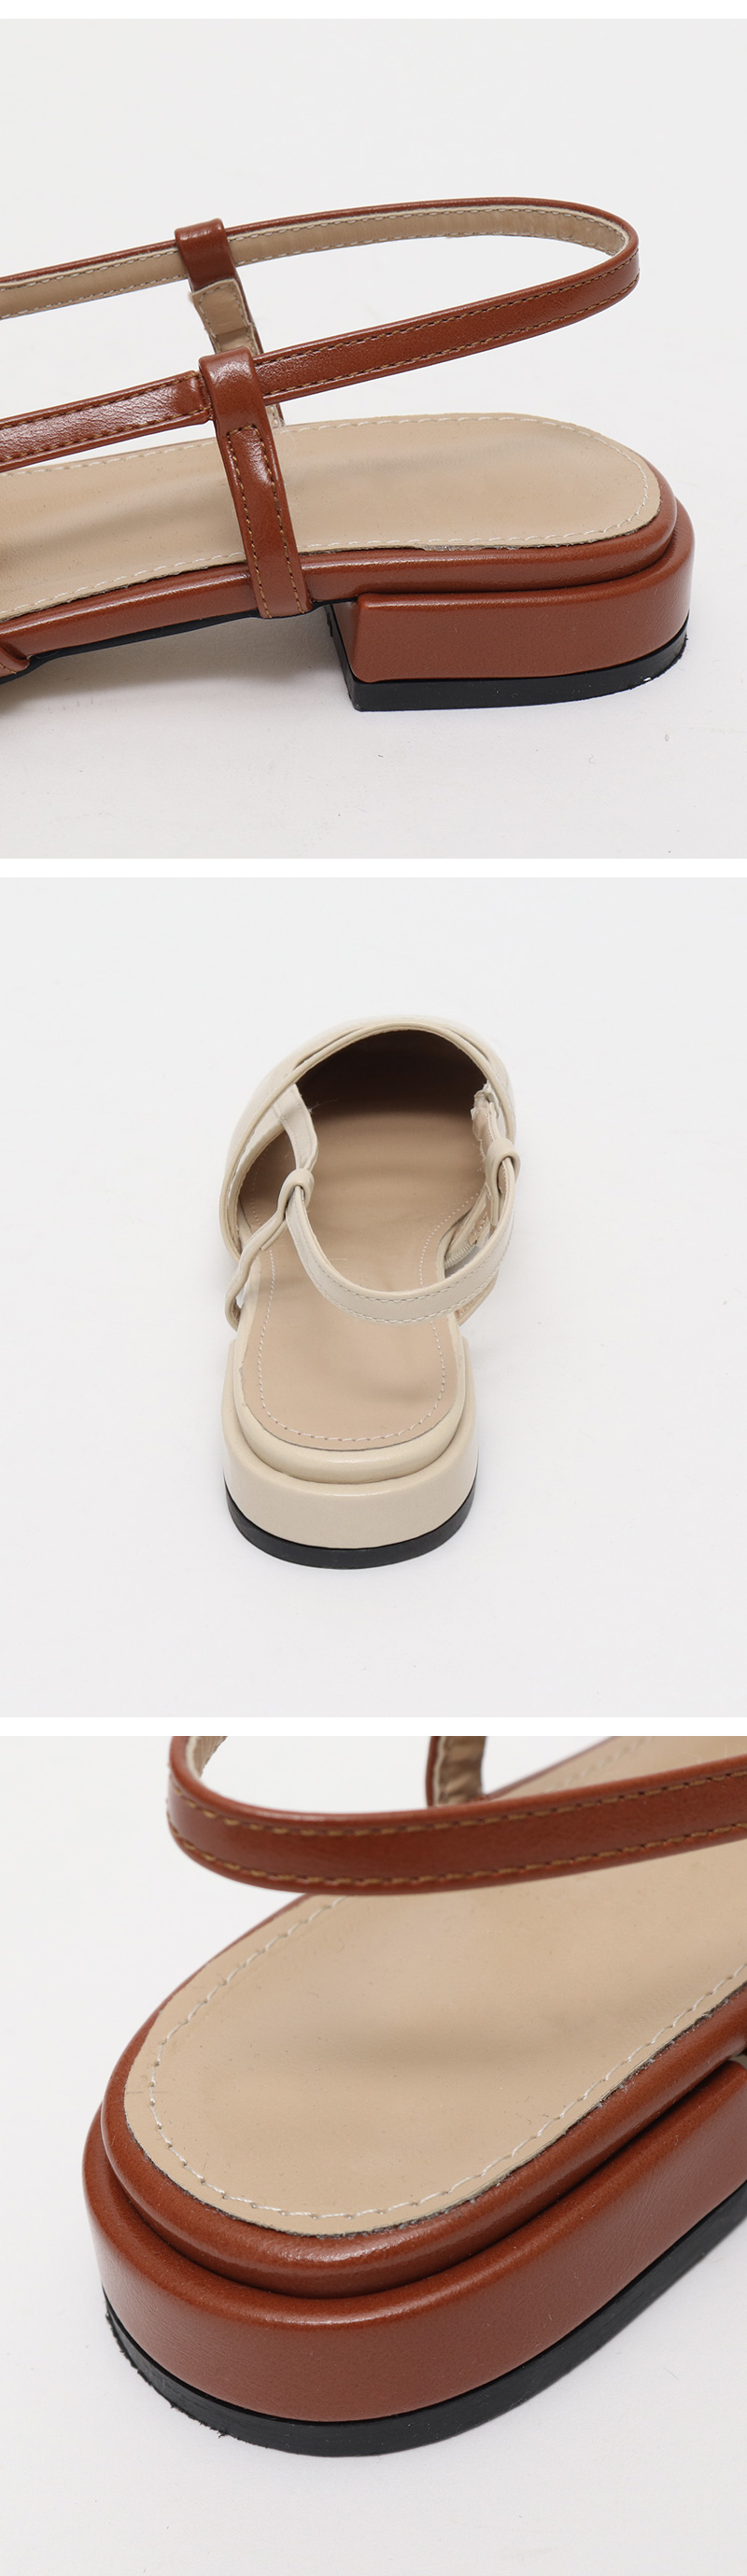 Ivy round flat-shoes_J